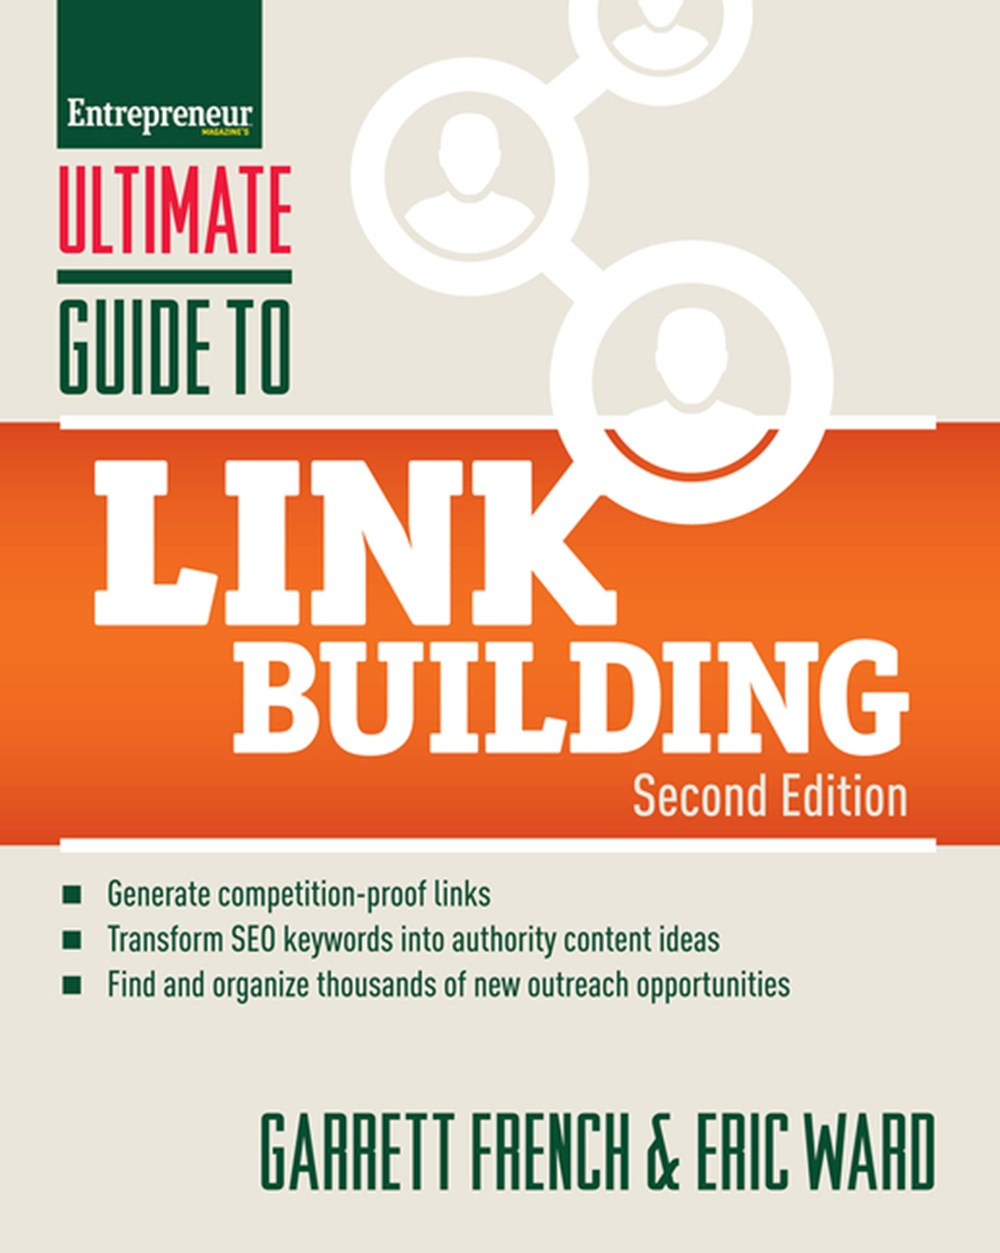 Ultimate Guide to Link Building: How to Build Website Authority, Increase Traffic and Search Ranking